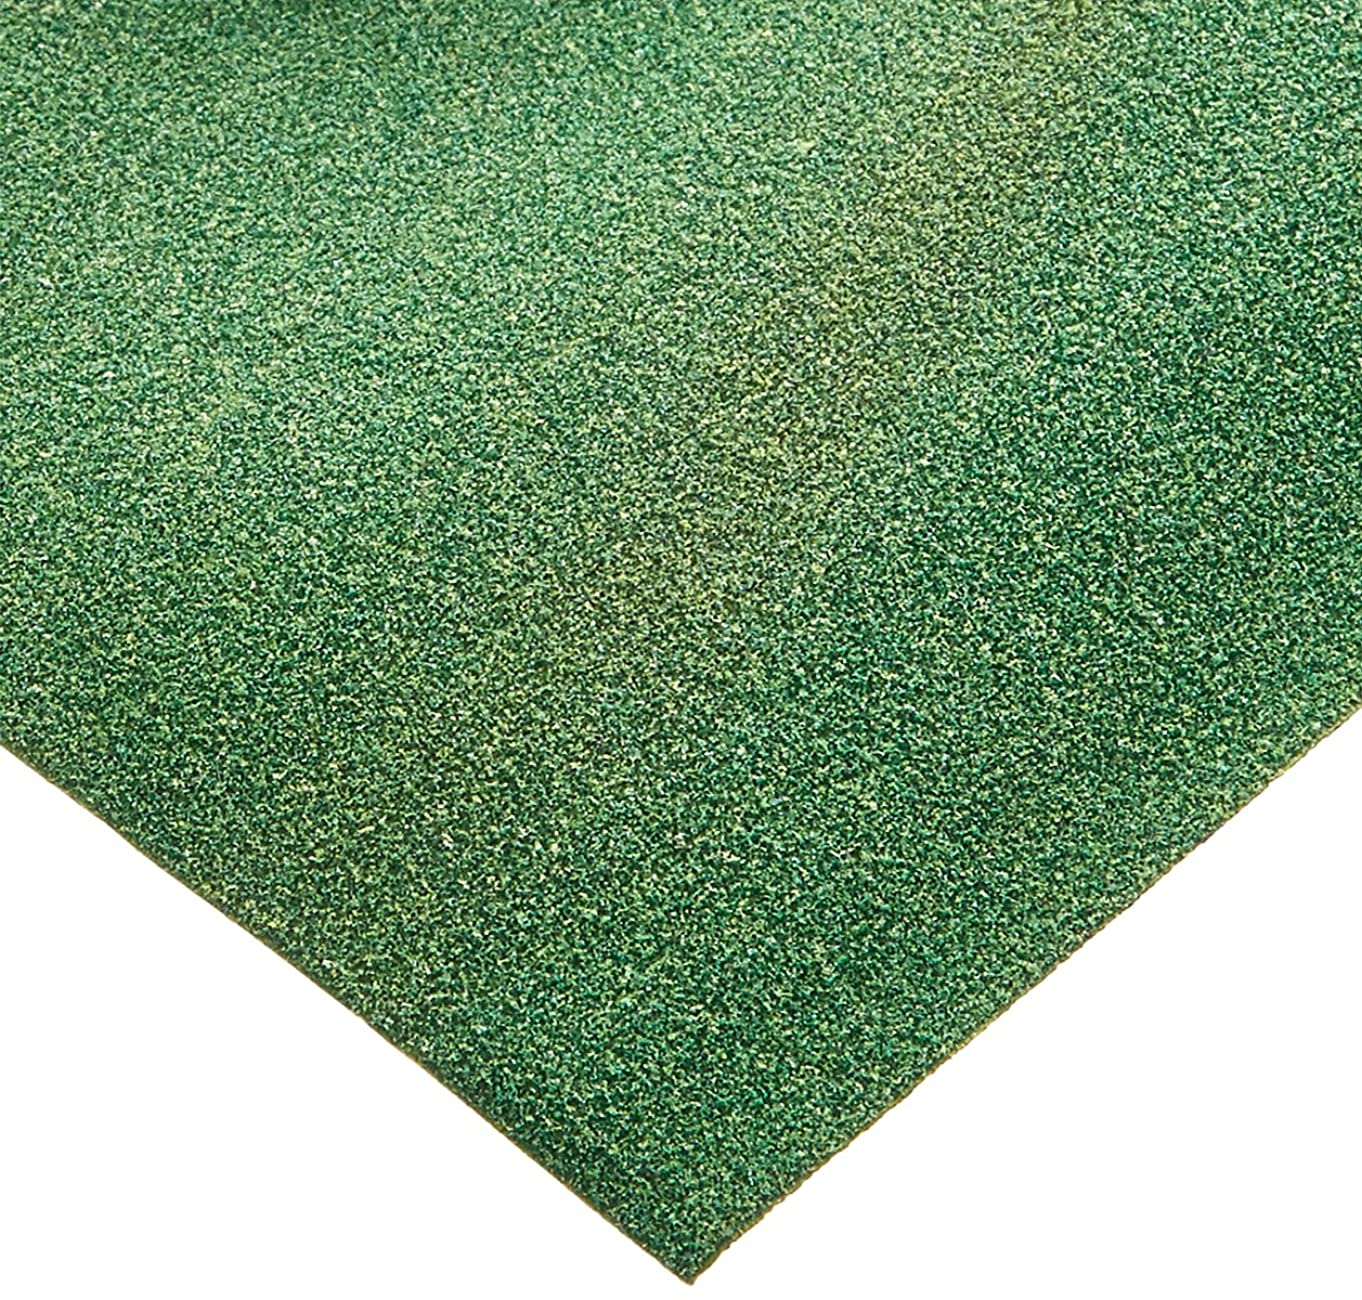 Simi Creative Products Grass Mat 12